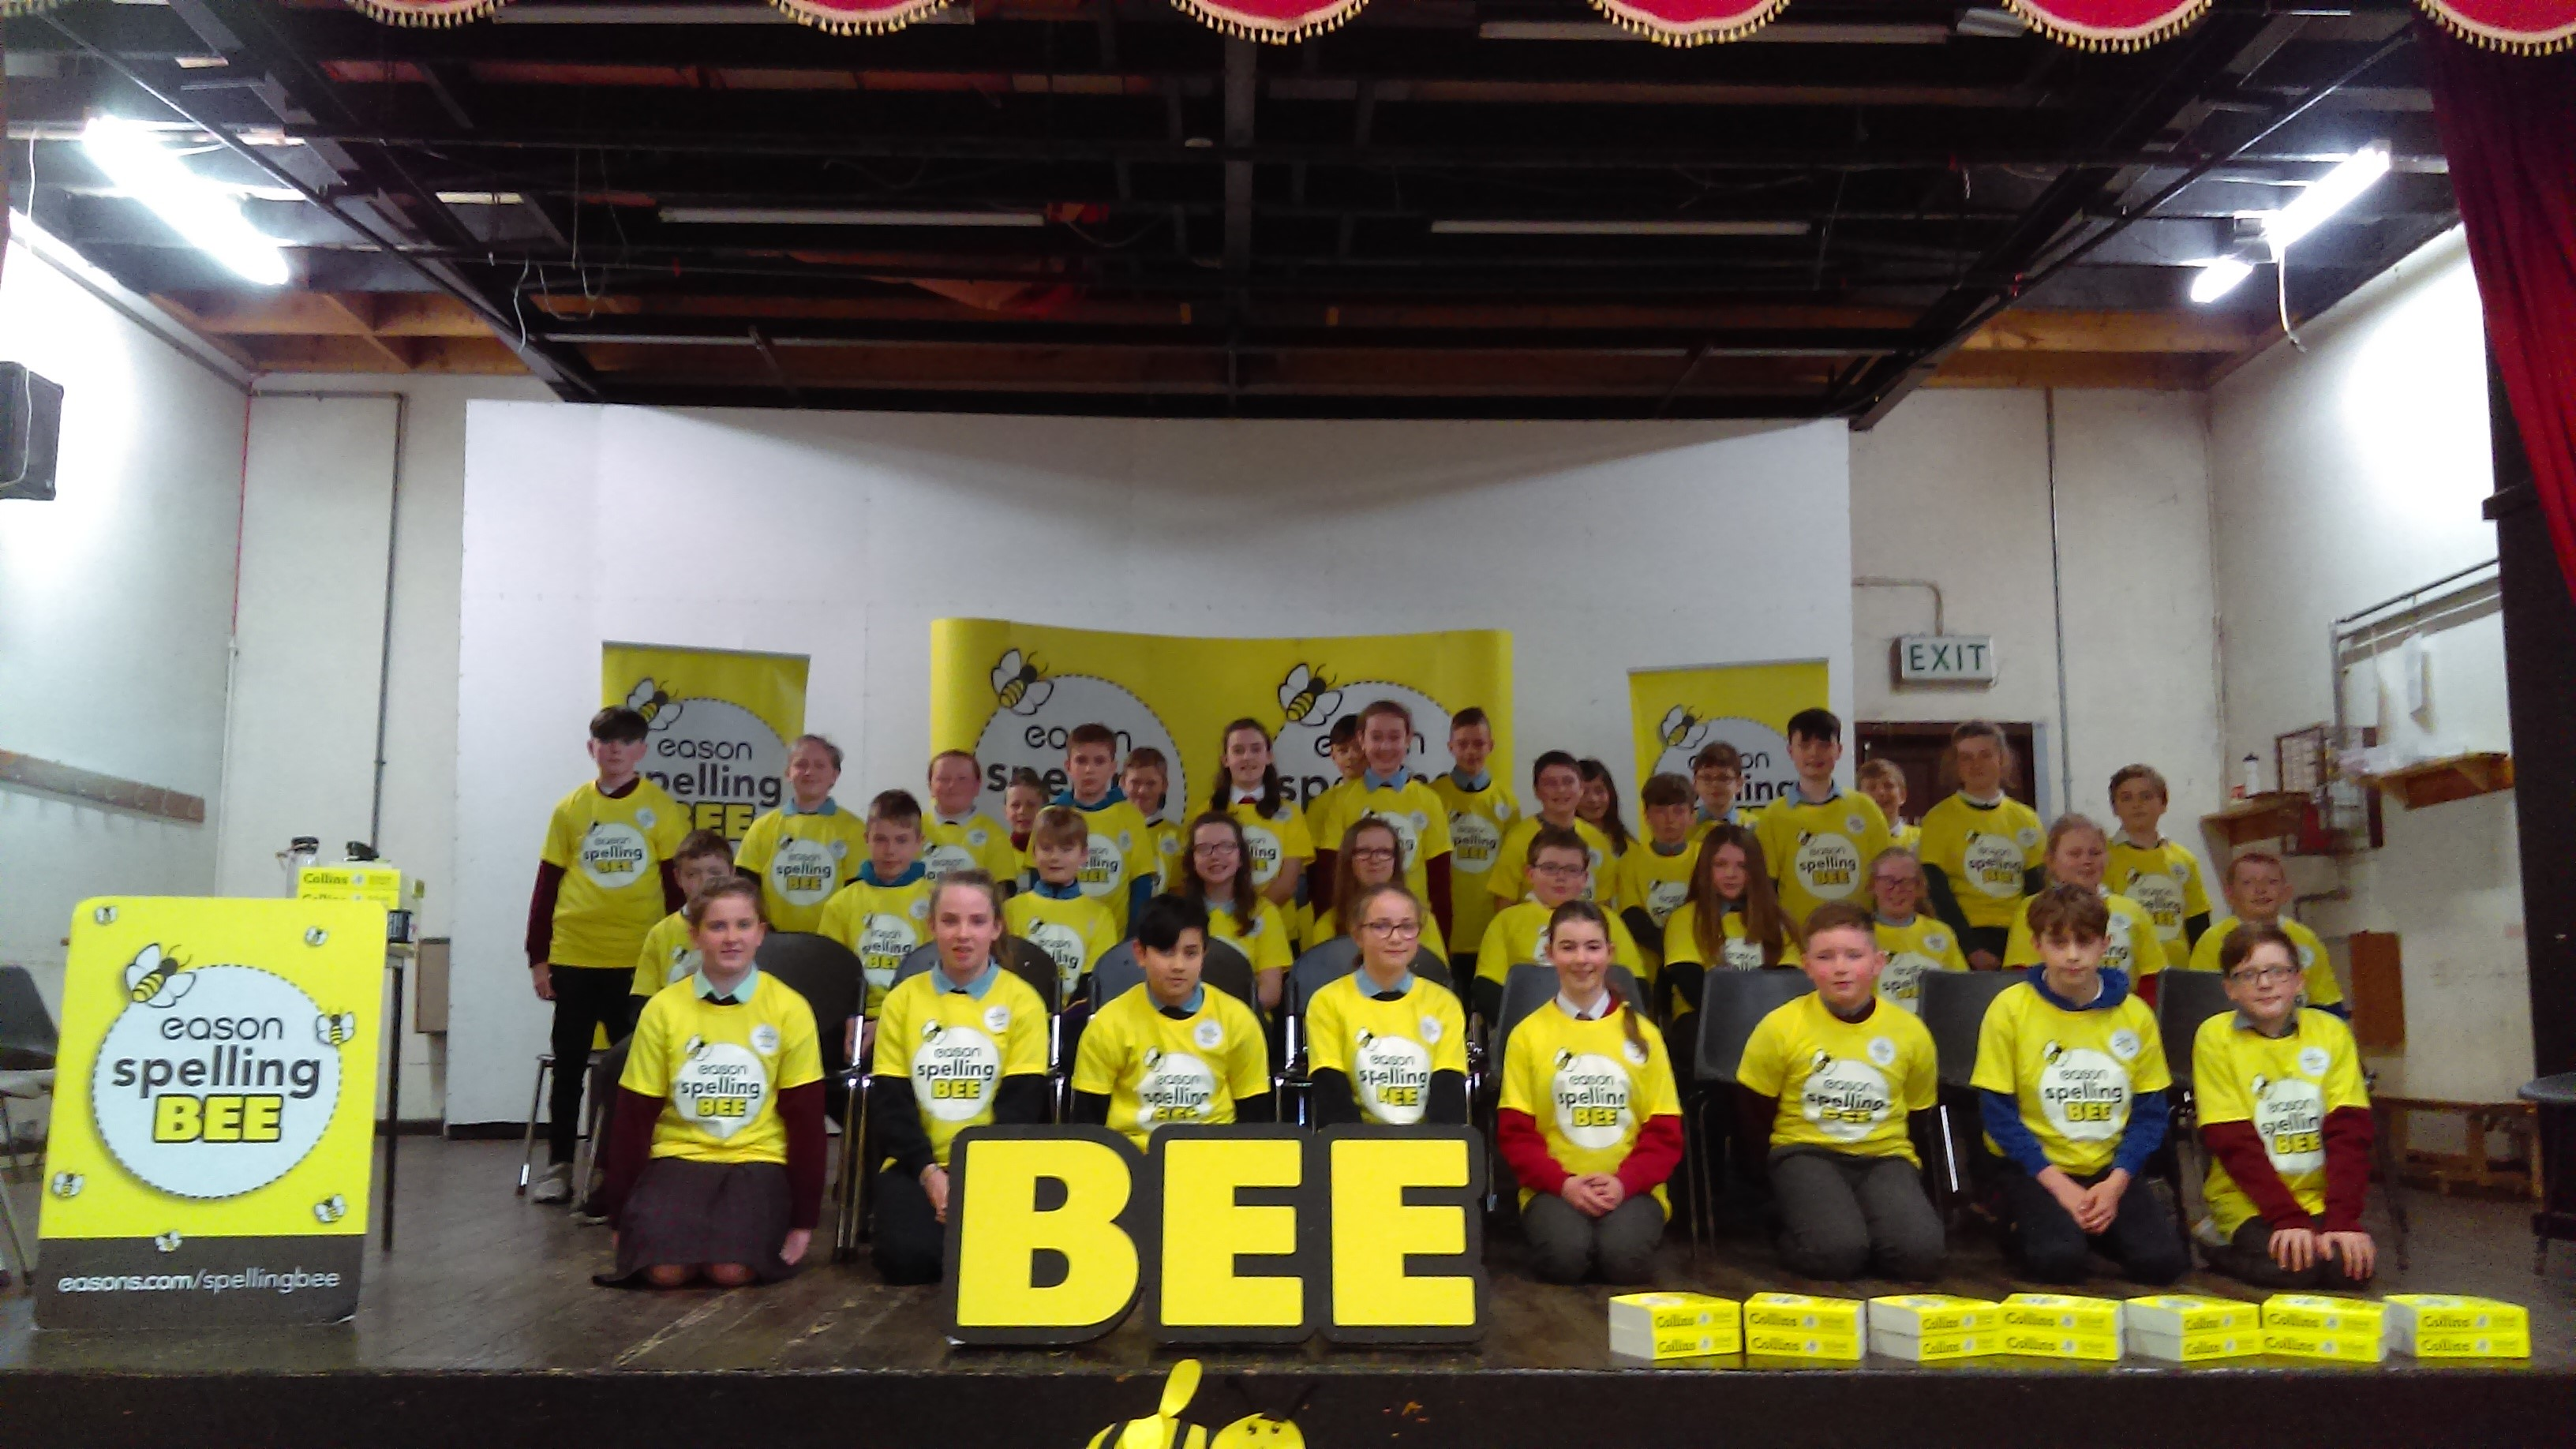 Spelling Bee 2019 - Wexford Group Photo